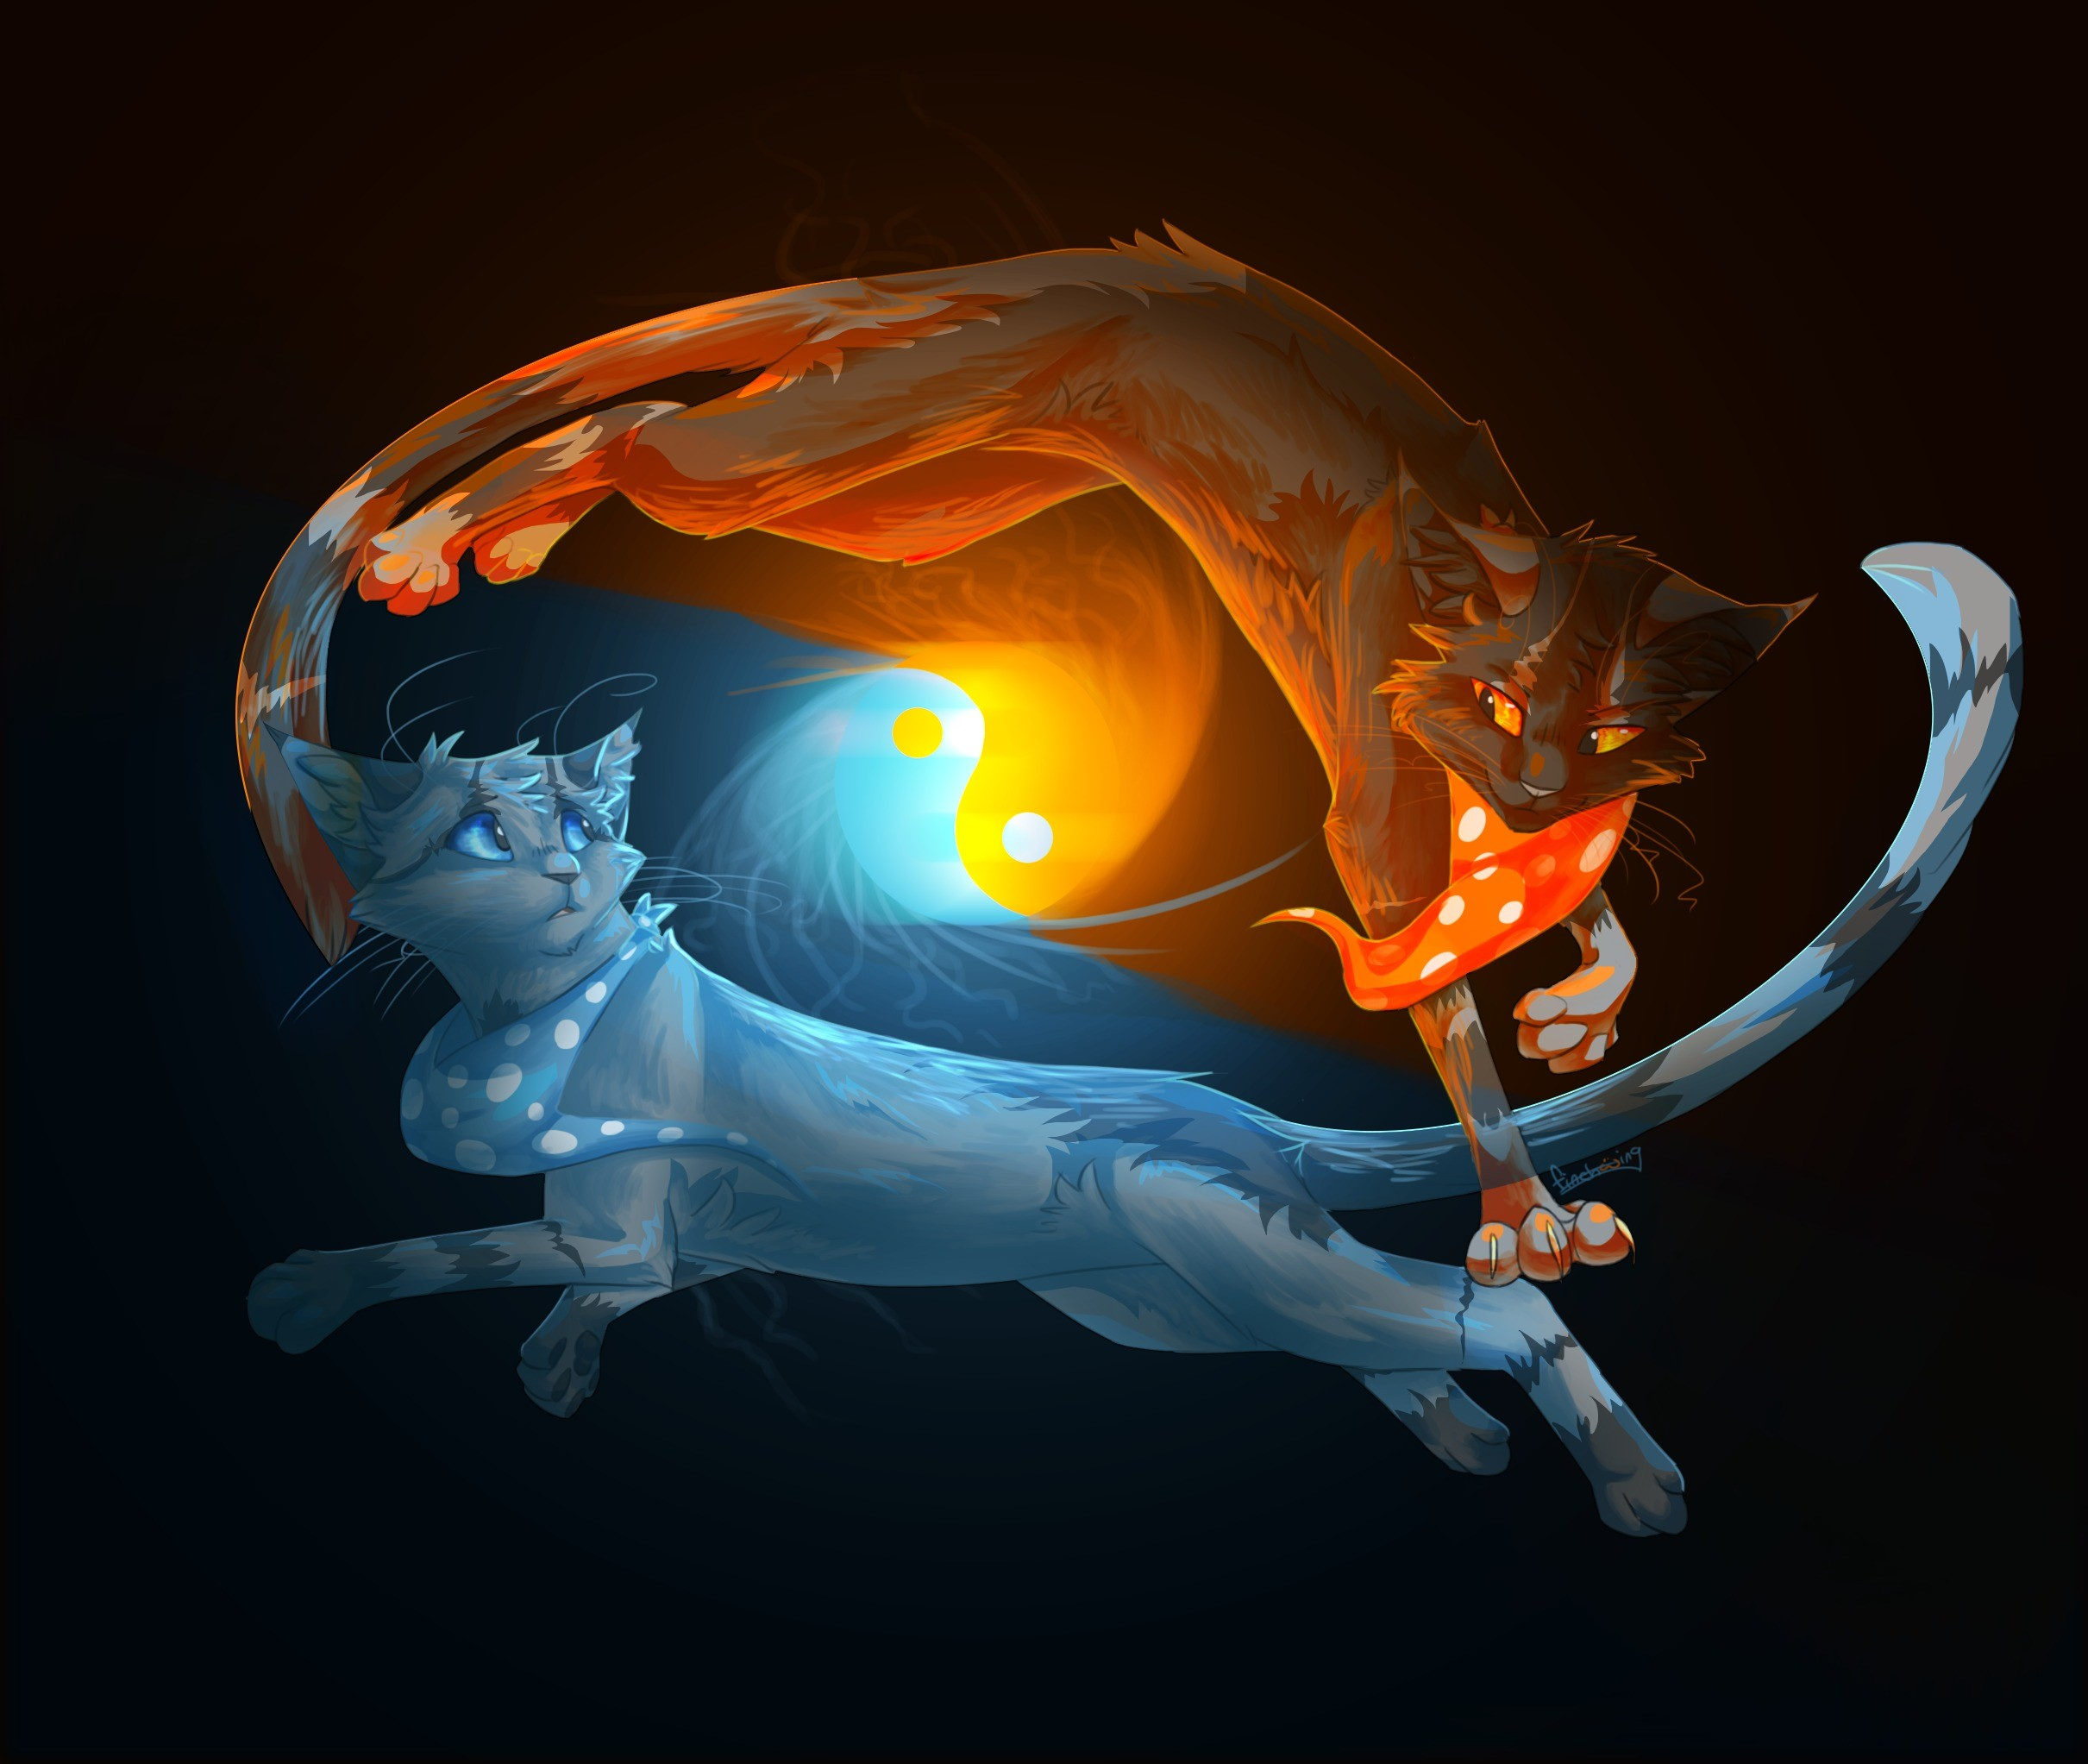 Warriors Fire And Ice Episode 3: Warrior Cat Wallpapers Backgrounds (56+ Images